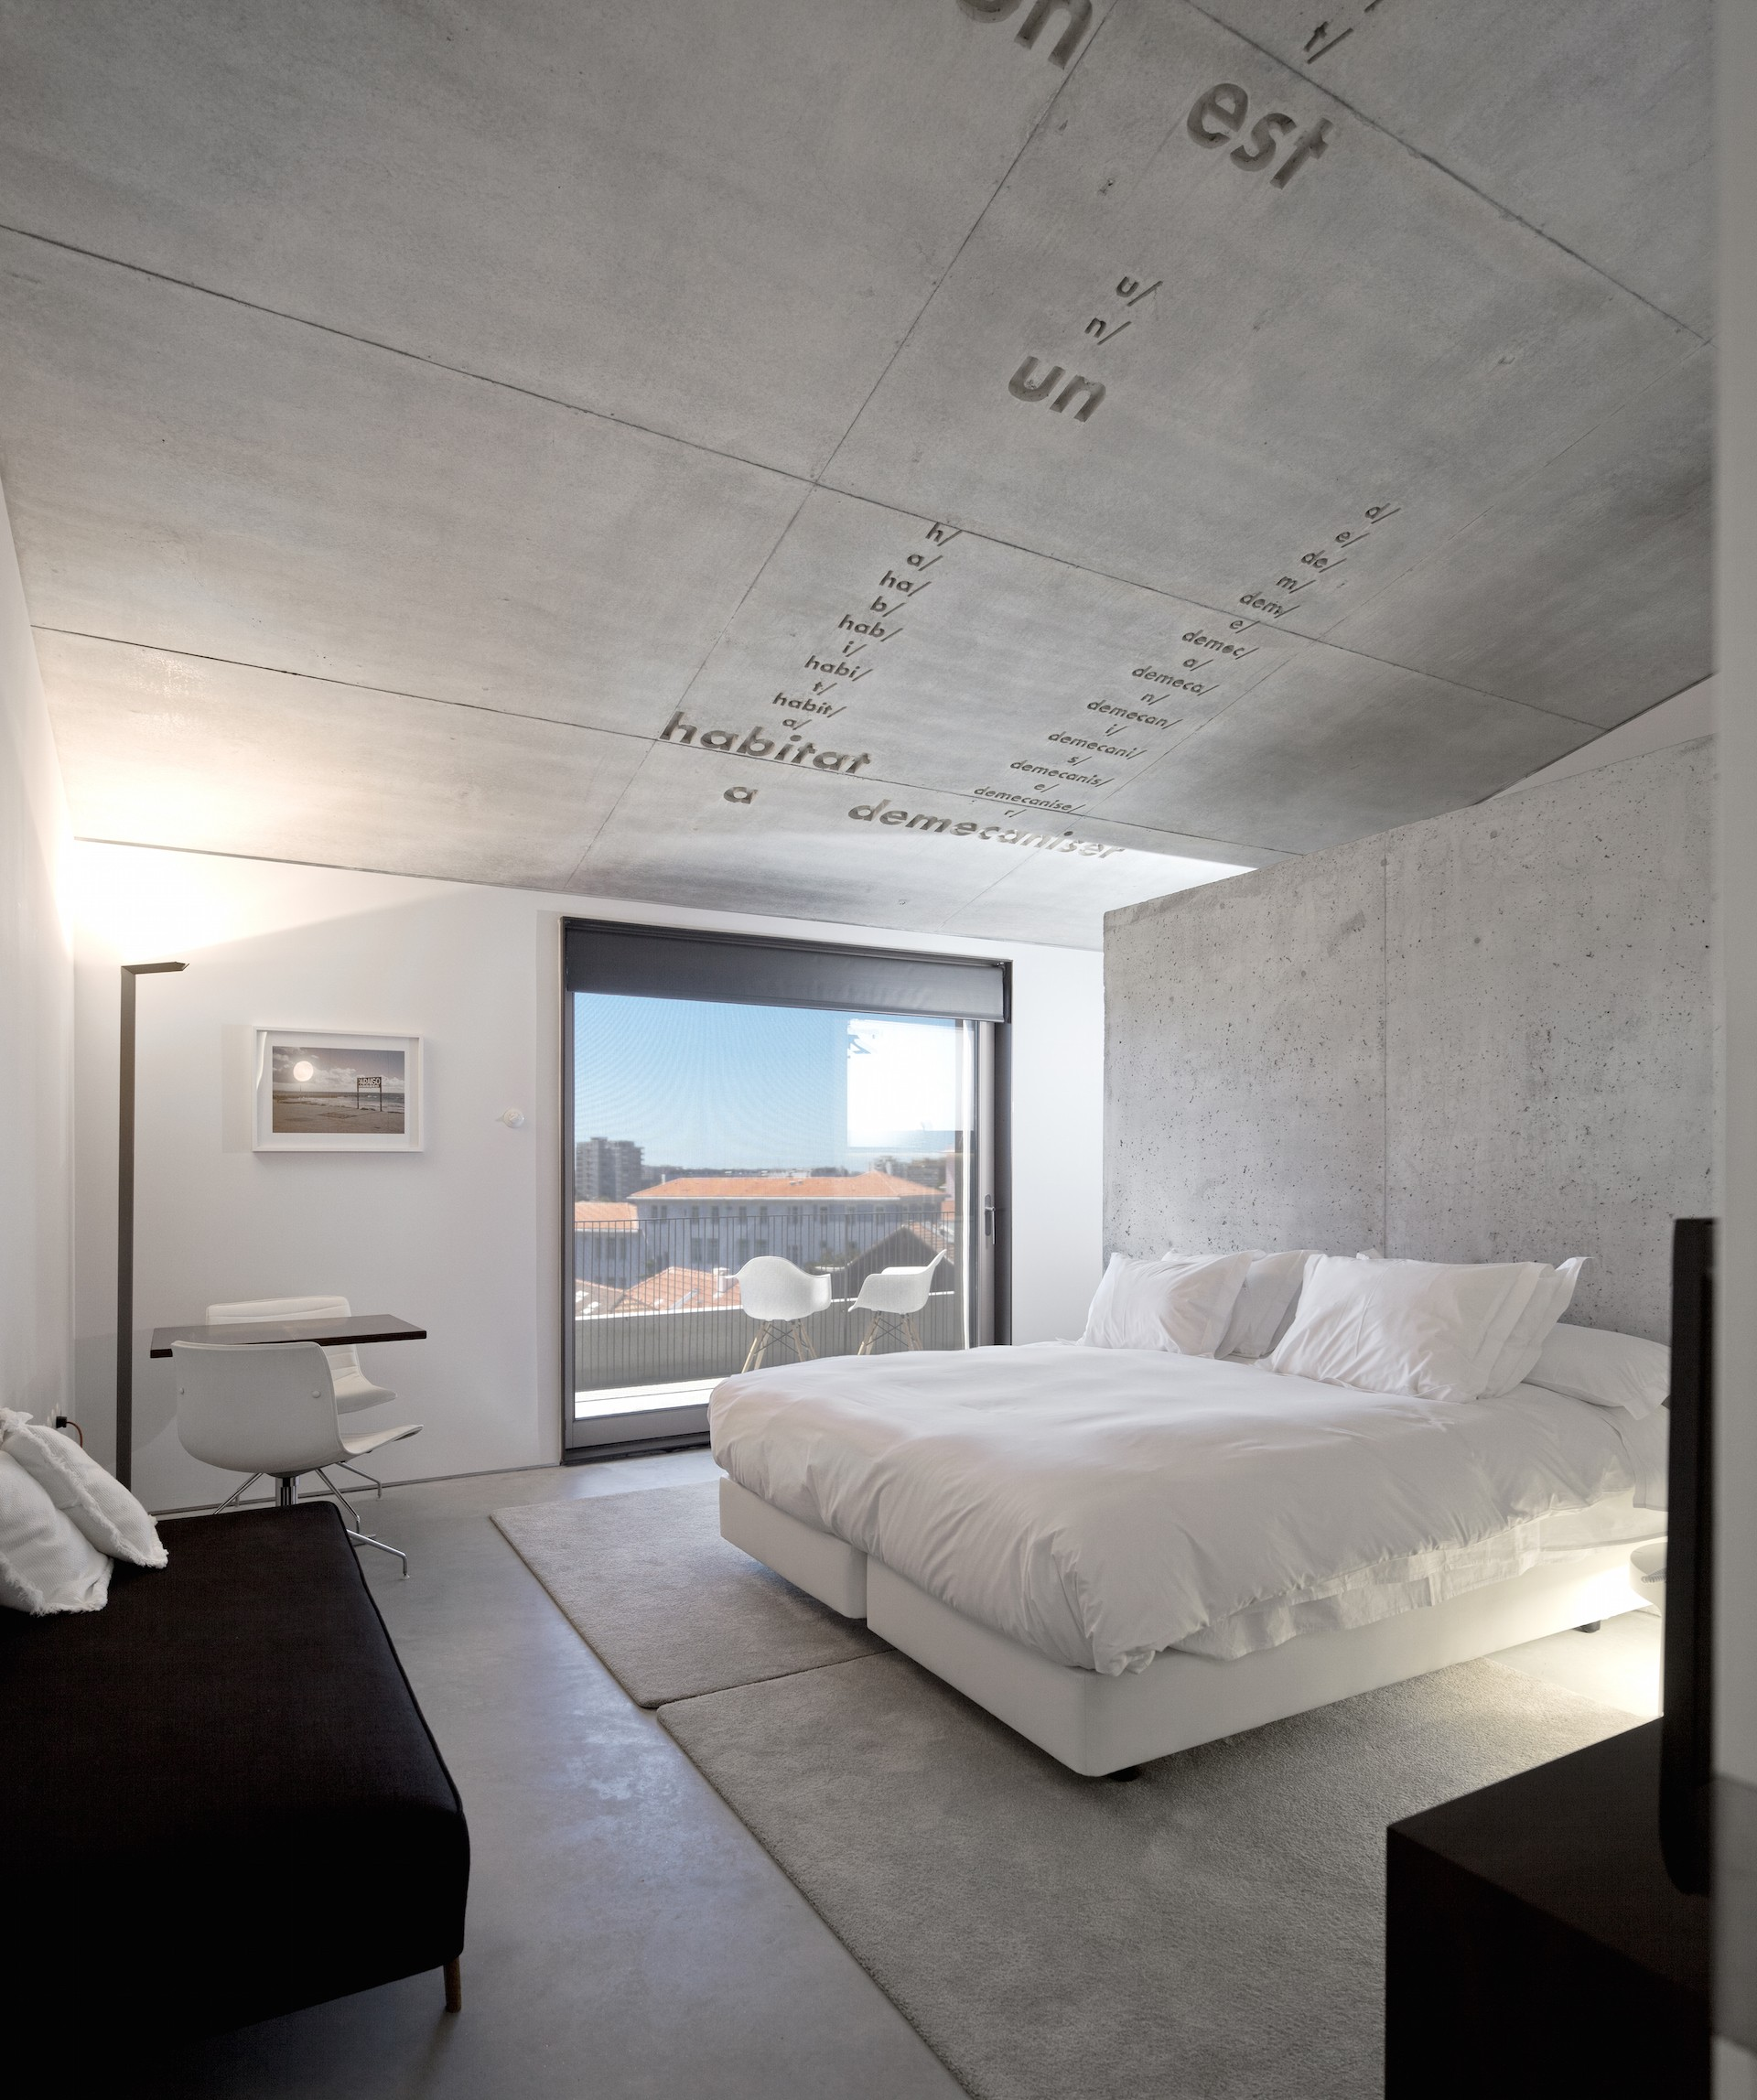 Best Design Hotels 2 what to do in porto What to do in Porto: 48 hours in the Undefeated city Best Design Hotels 2